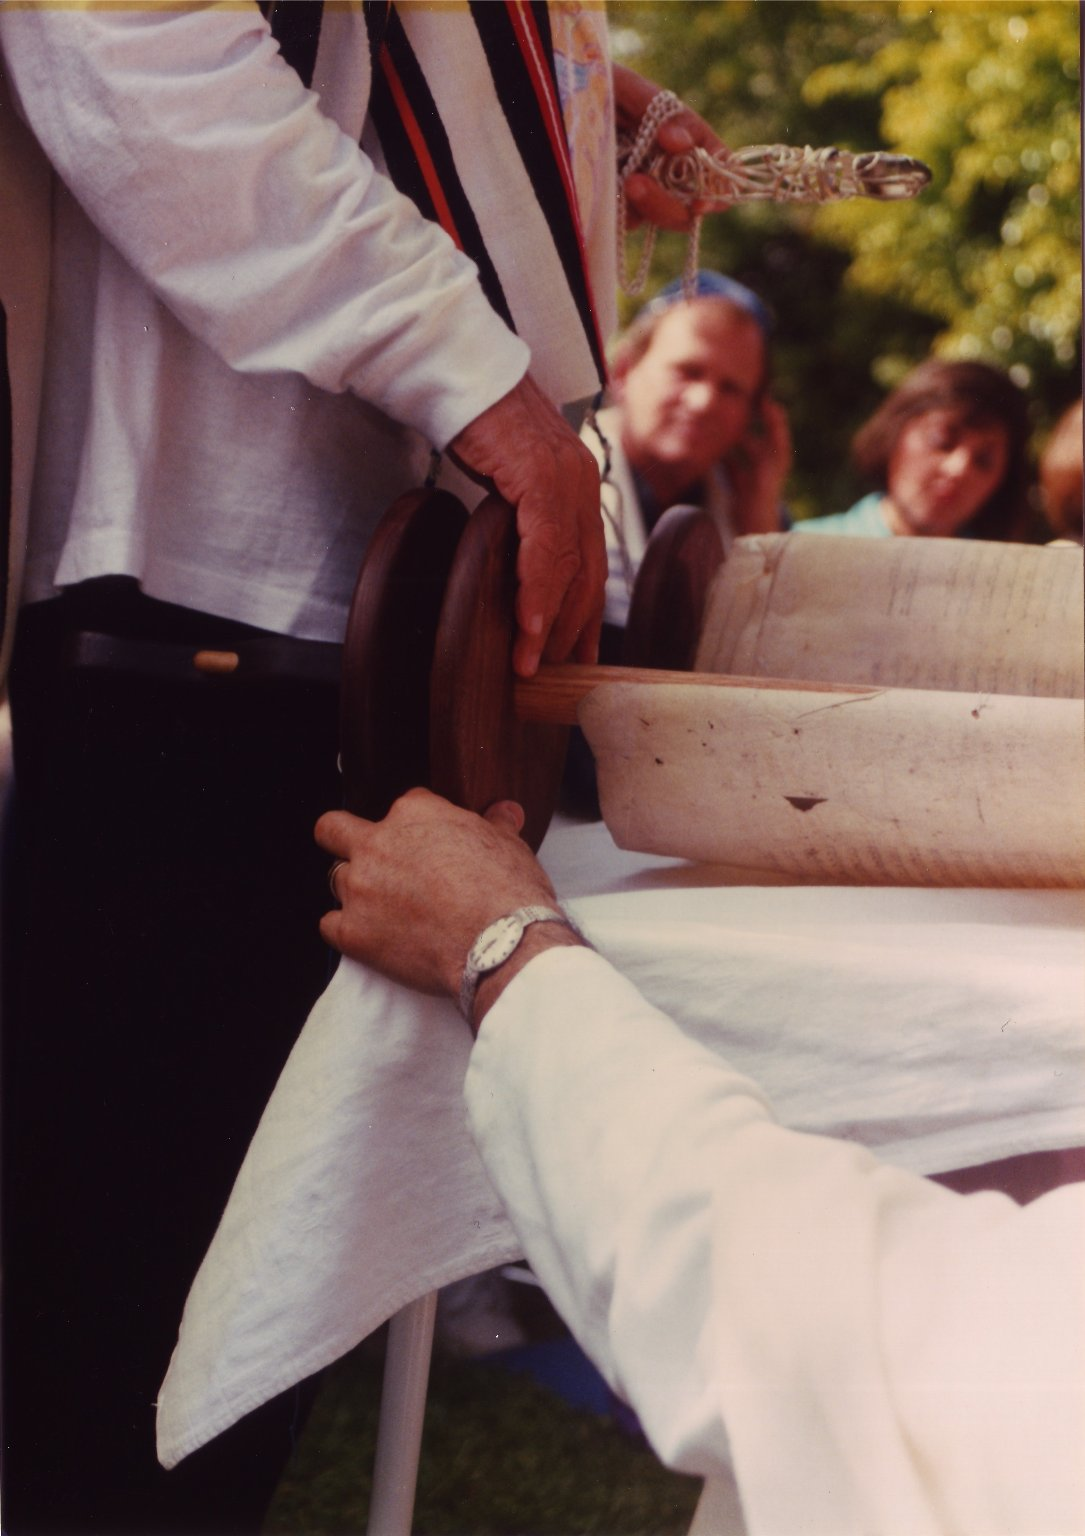 Rabbi Zalman Schachter-Shalomi reading from a Torah scroll (at Fellowship House Farm or B'nai Chorin).